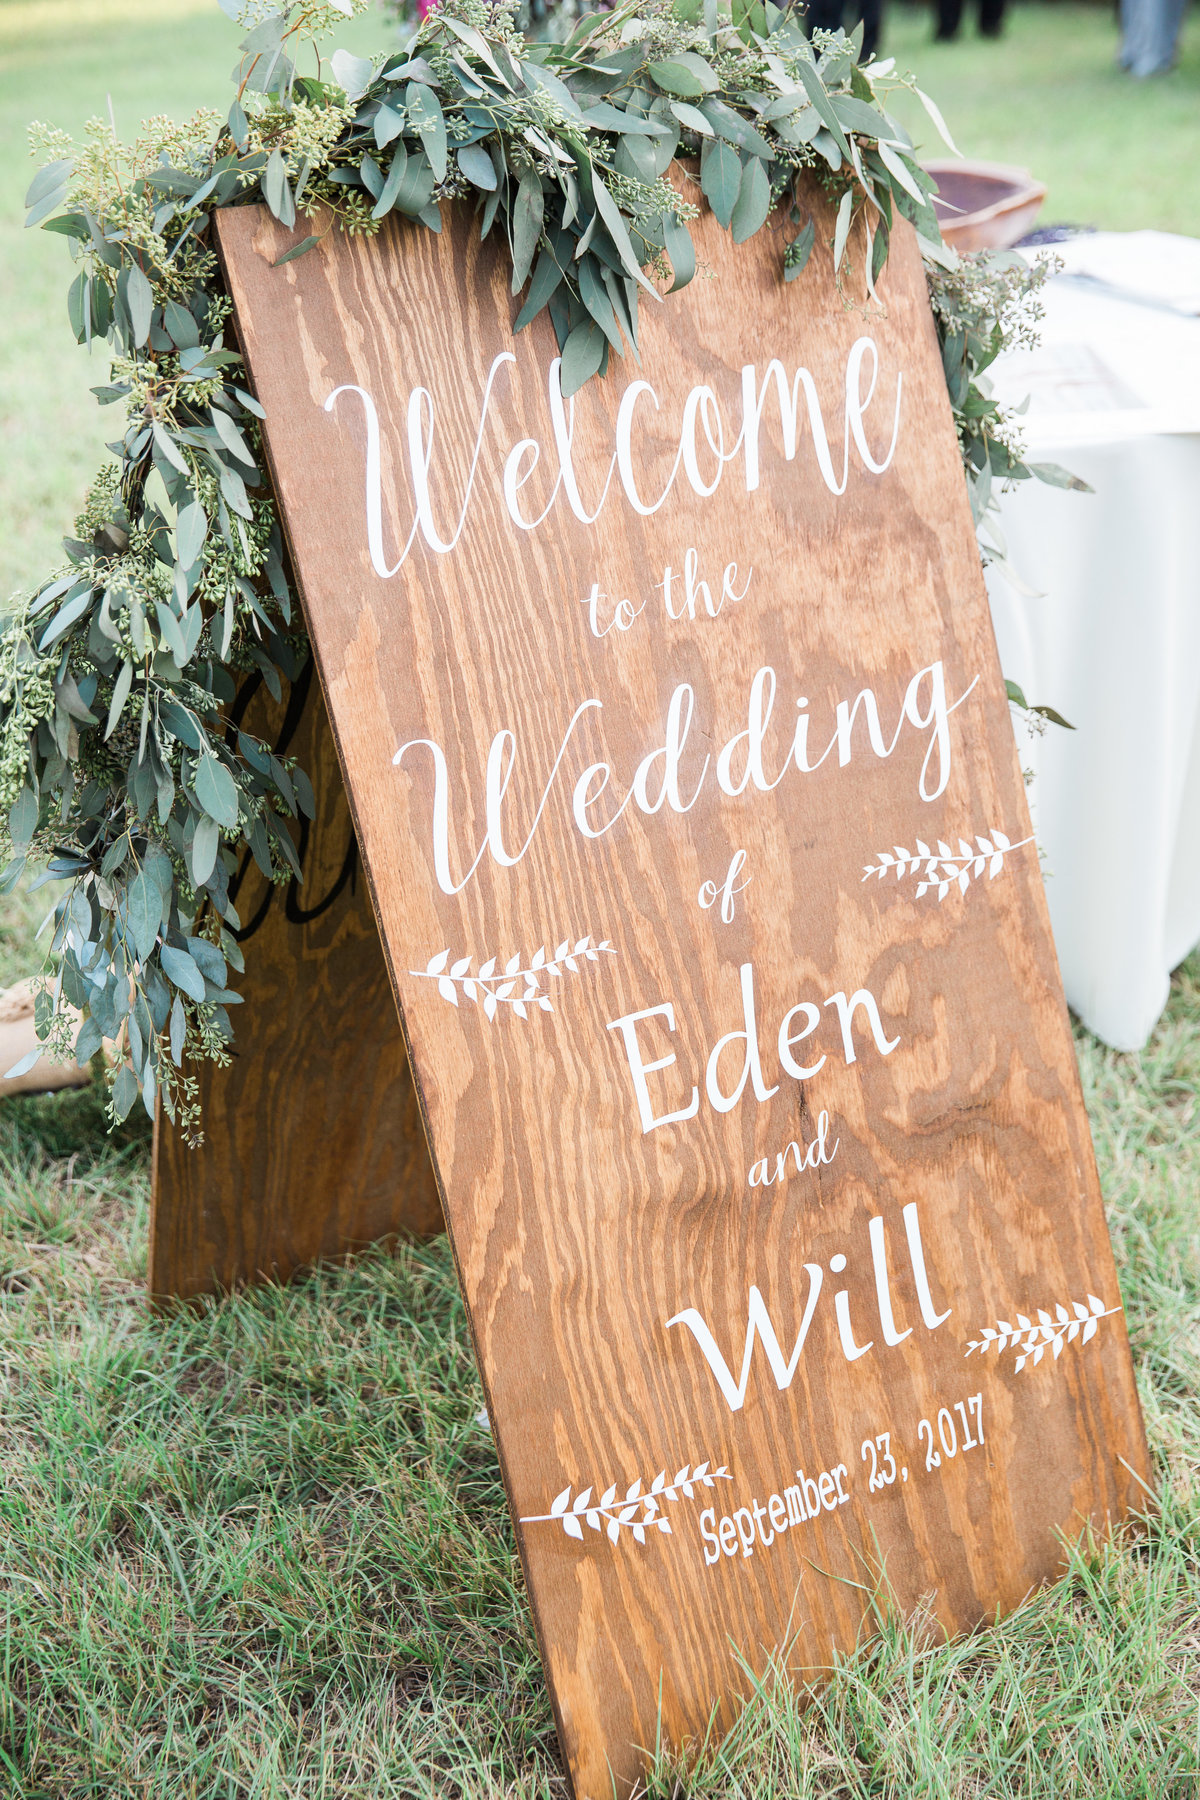 Eden & Will Wedding_Lindsay Ott Photography_Mississippi Wedding Photographer54